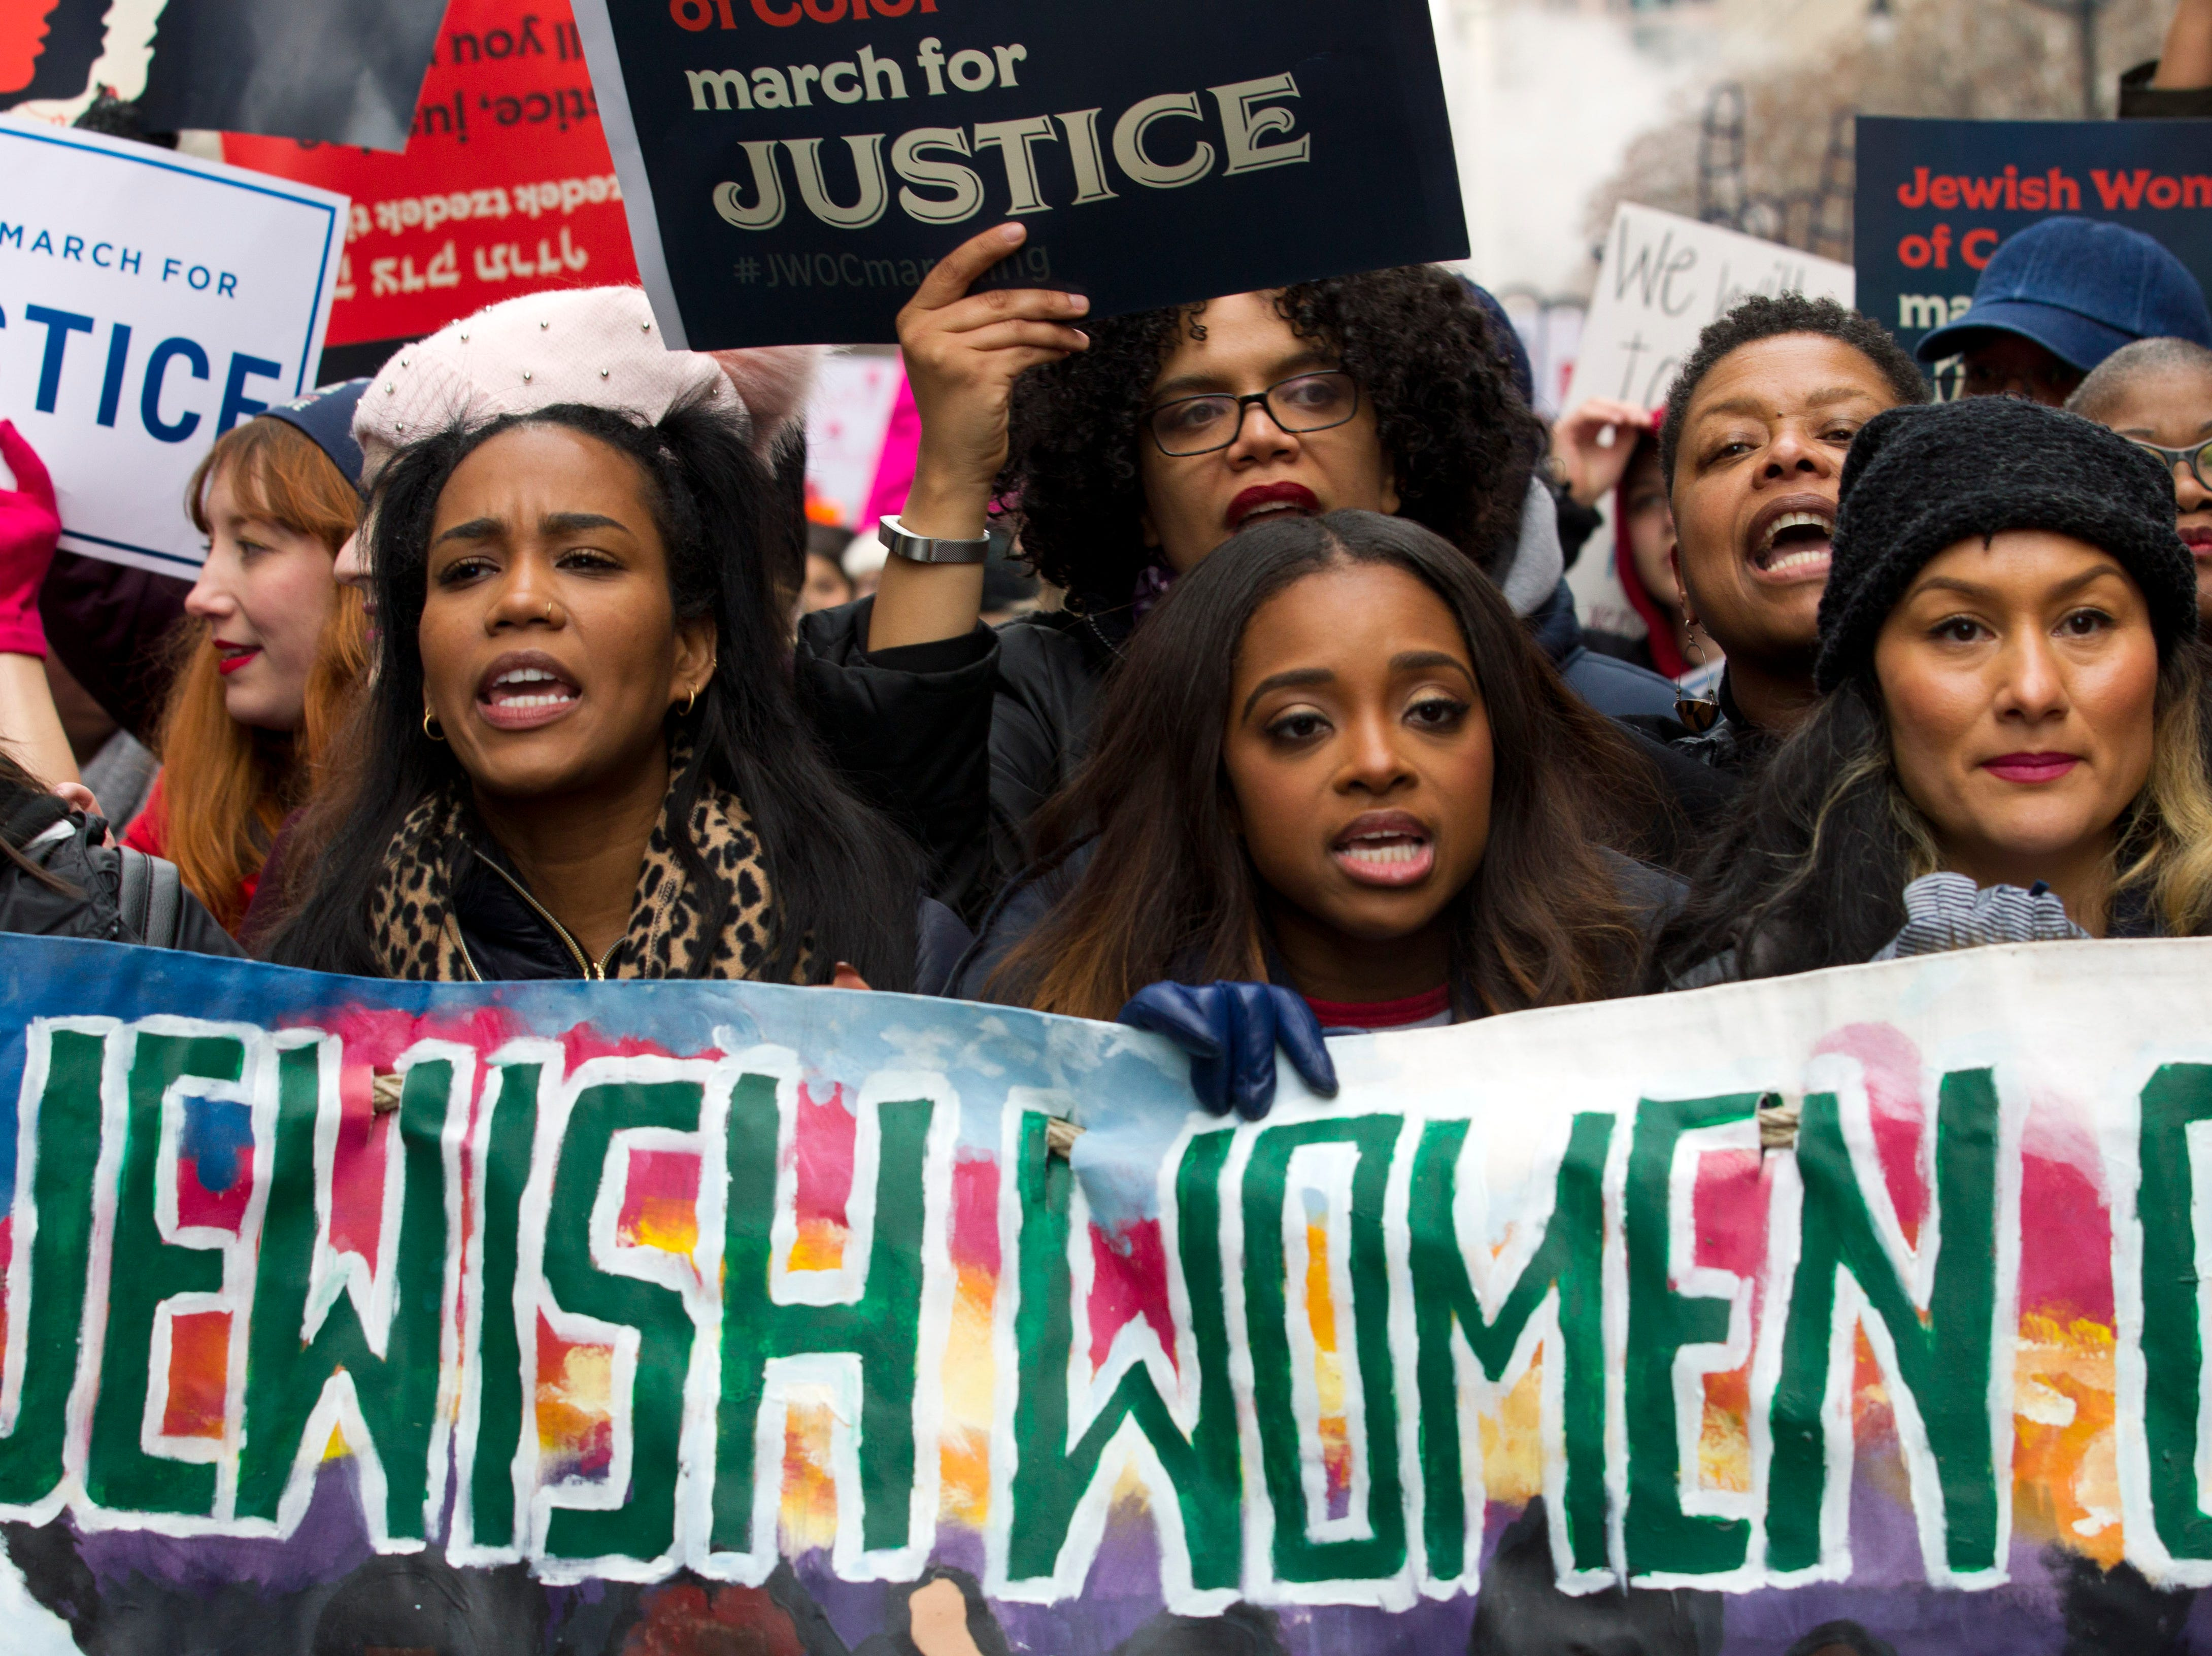 Co-president of the 2019 Women's March, Tamika Mallory, center, joins other demonstrators on Pennsylvania Avenue during the Women's March in Washington on Saturday, Jan. 19, 2019.